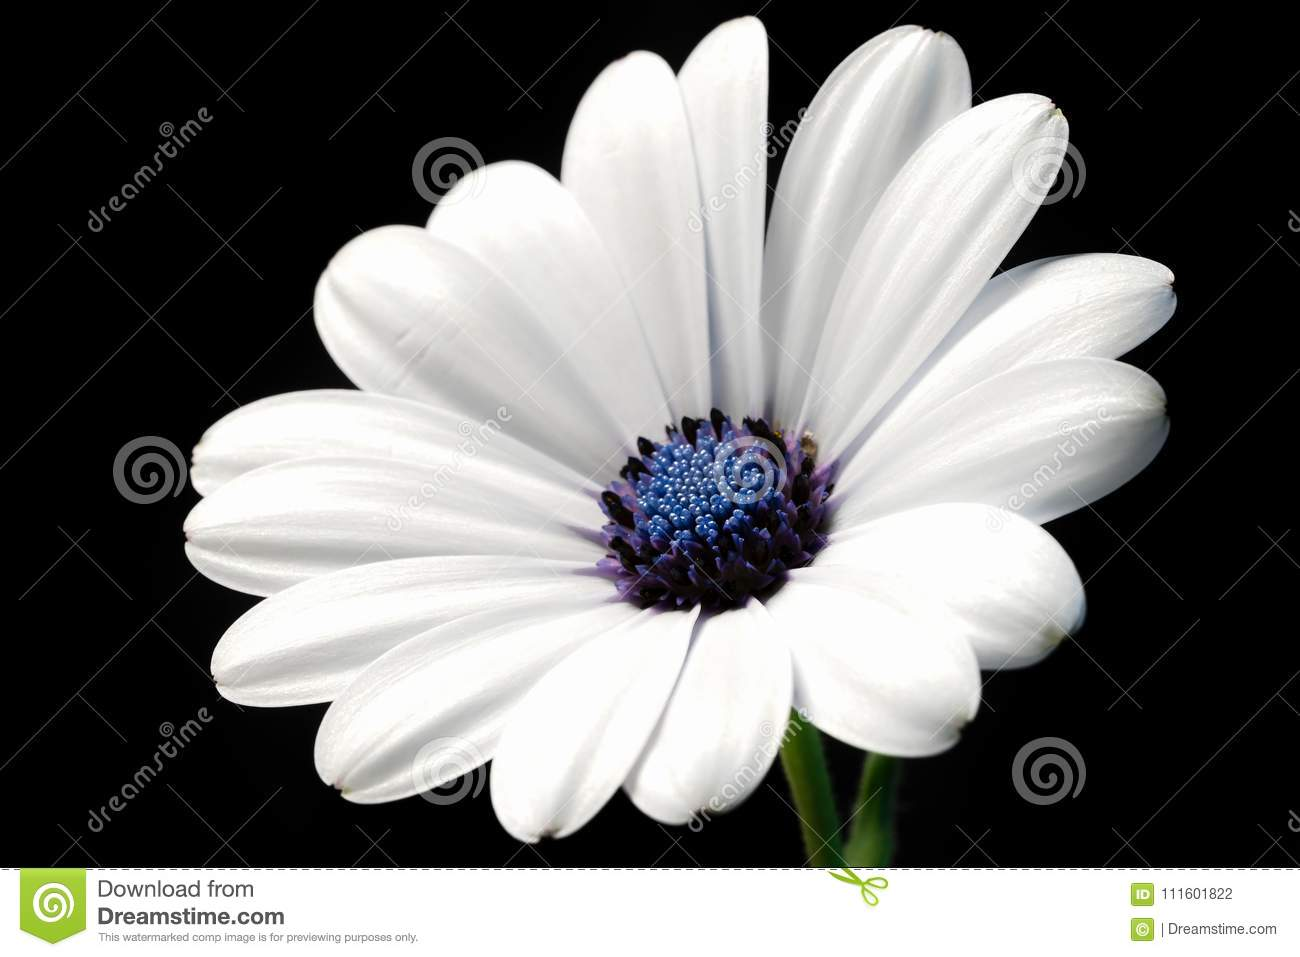 Simple light clean white flower black background stock photo image simple light clean white flower black background mightylinksfo